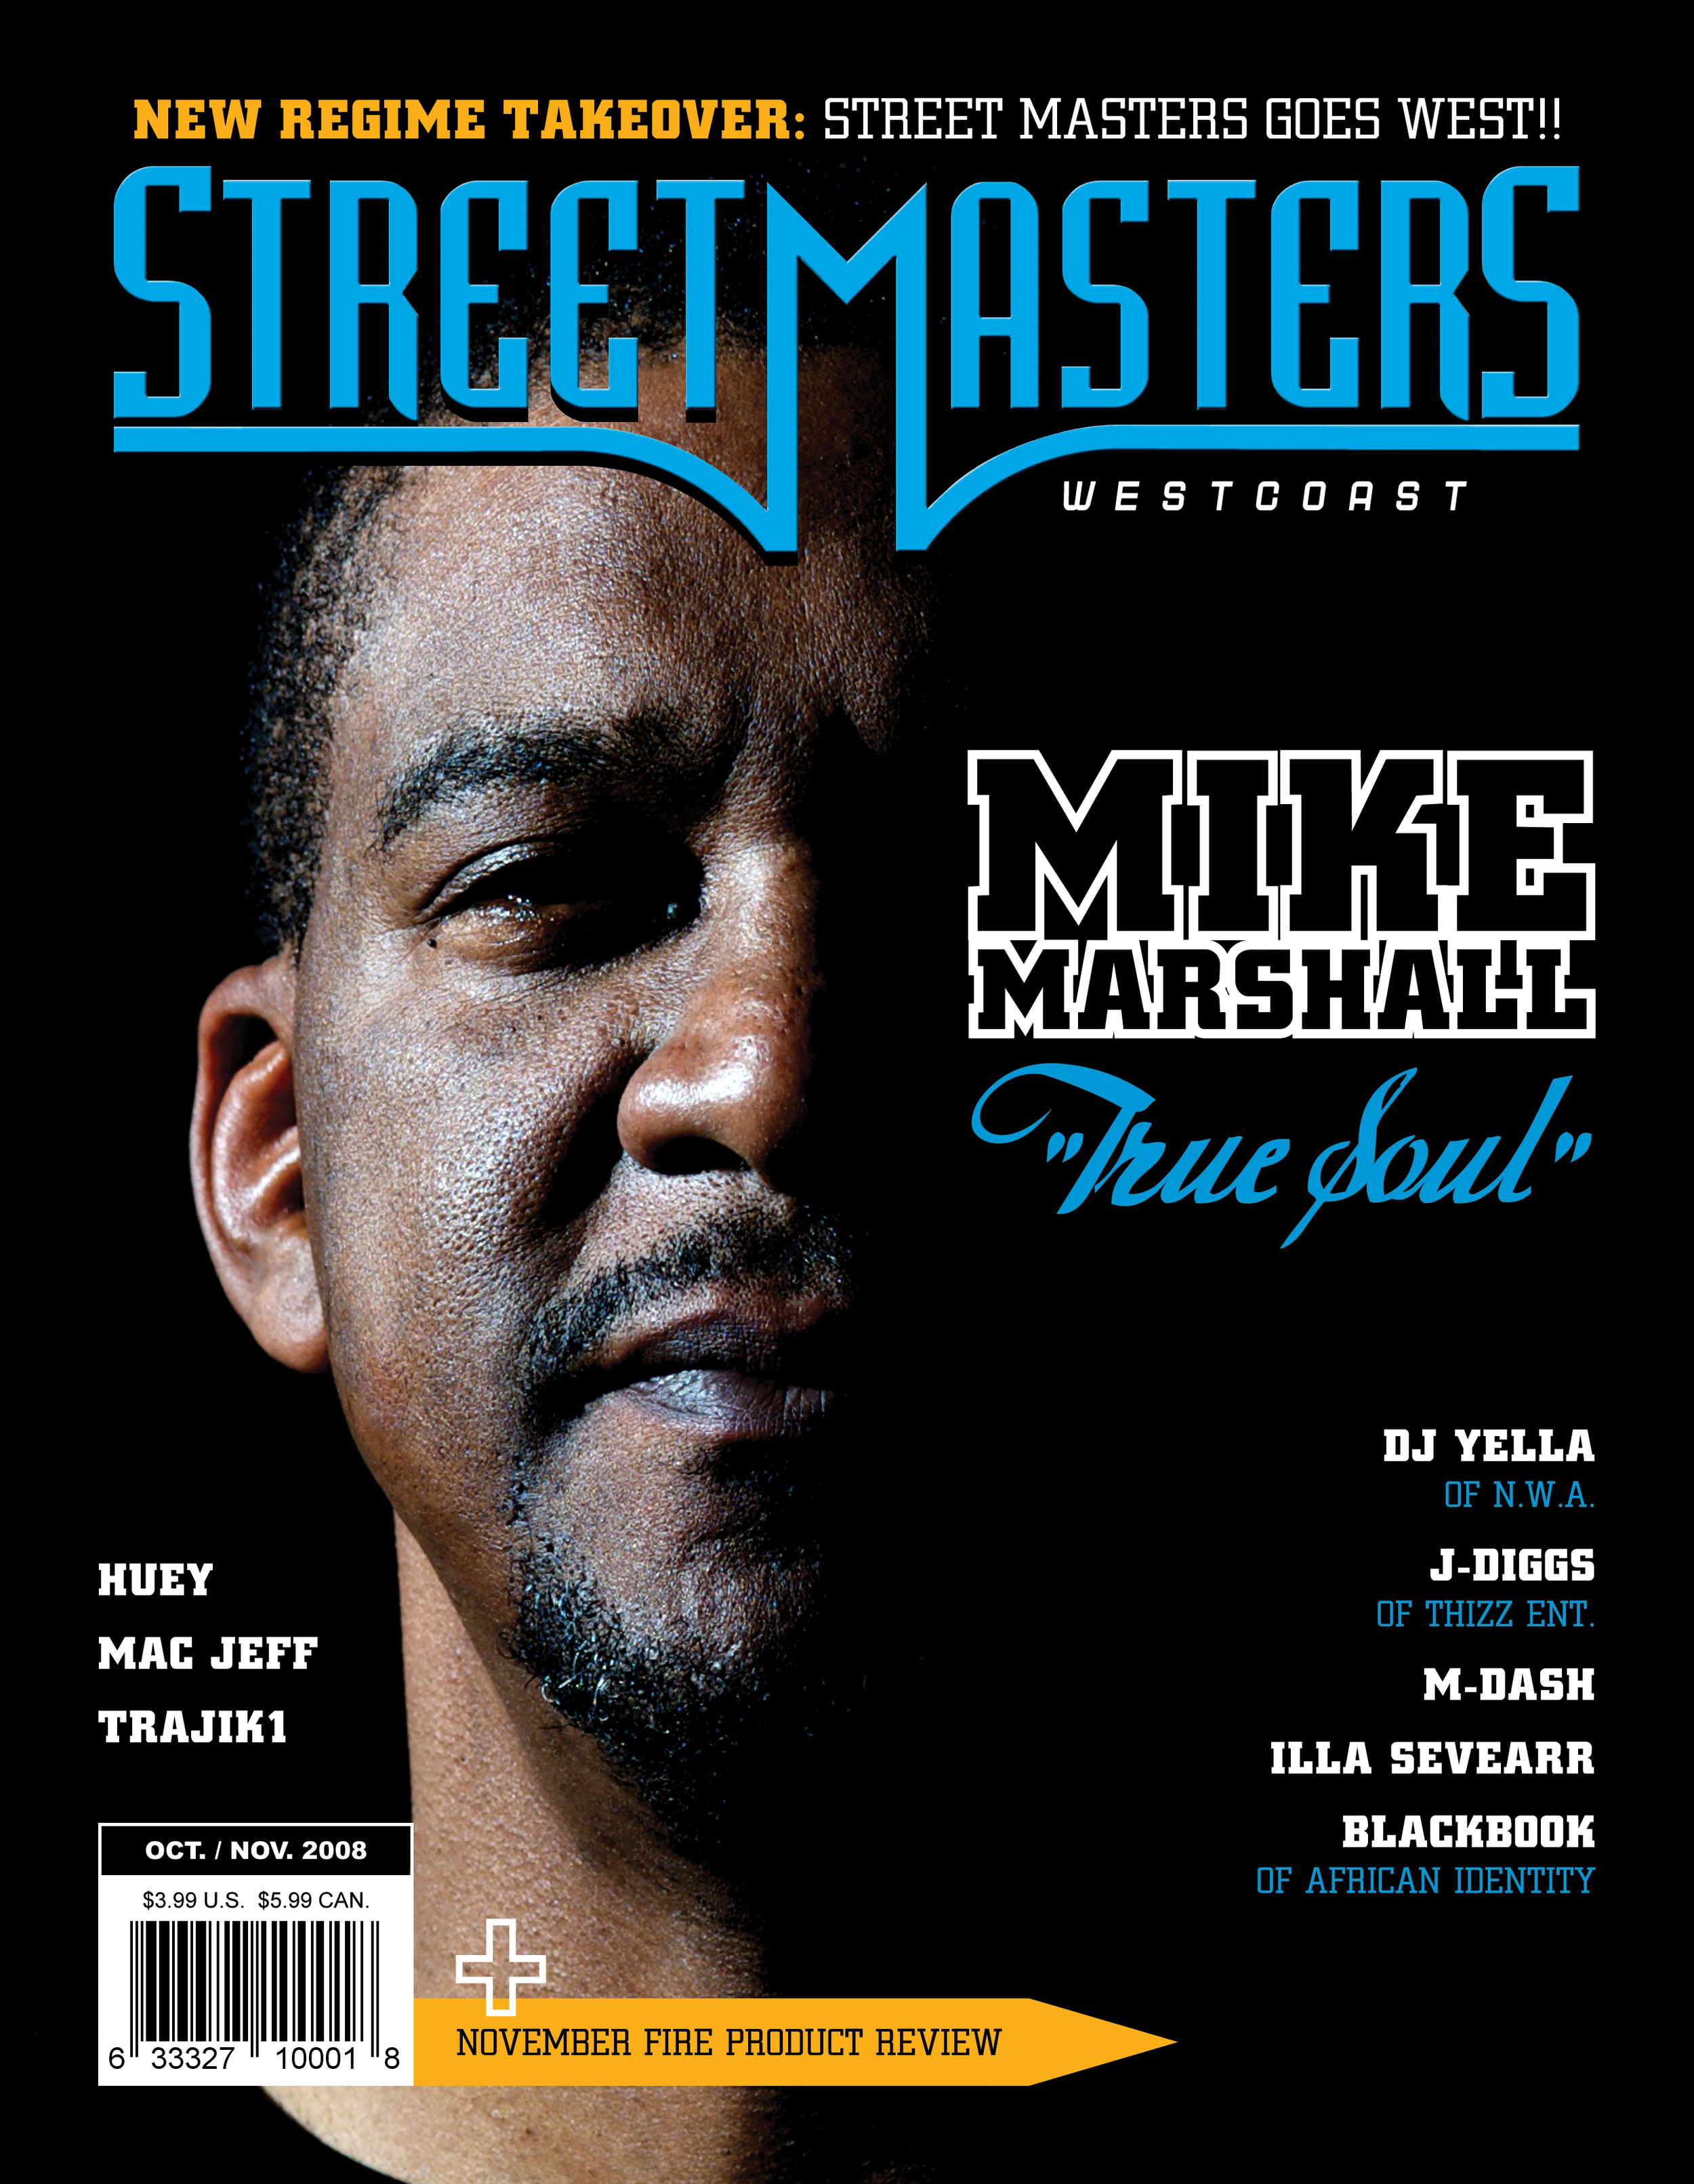 STREET_MASTERS_MAGAZINE_WESTCOAST_-_COVER_PNG.png